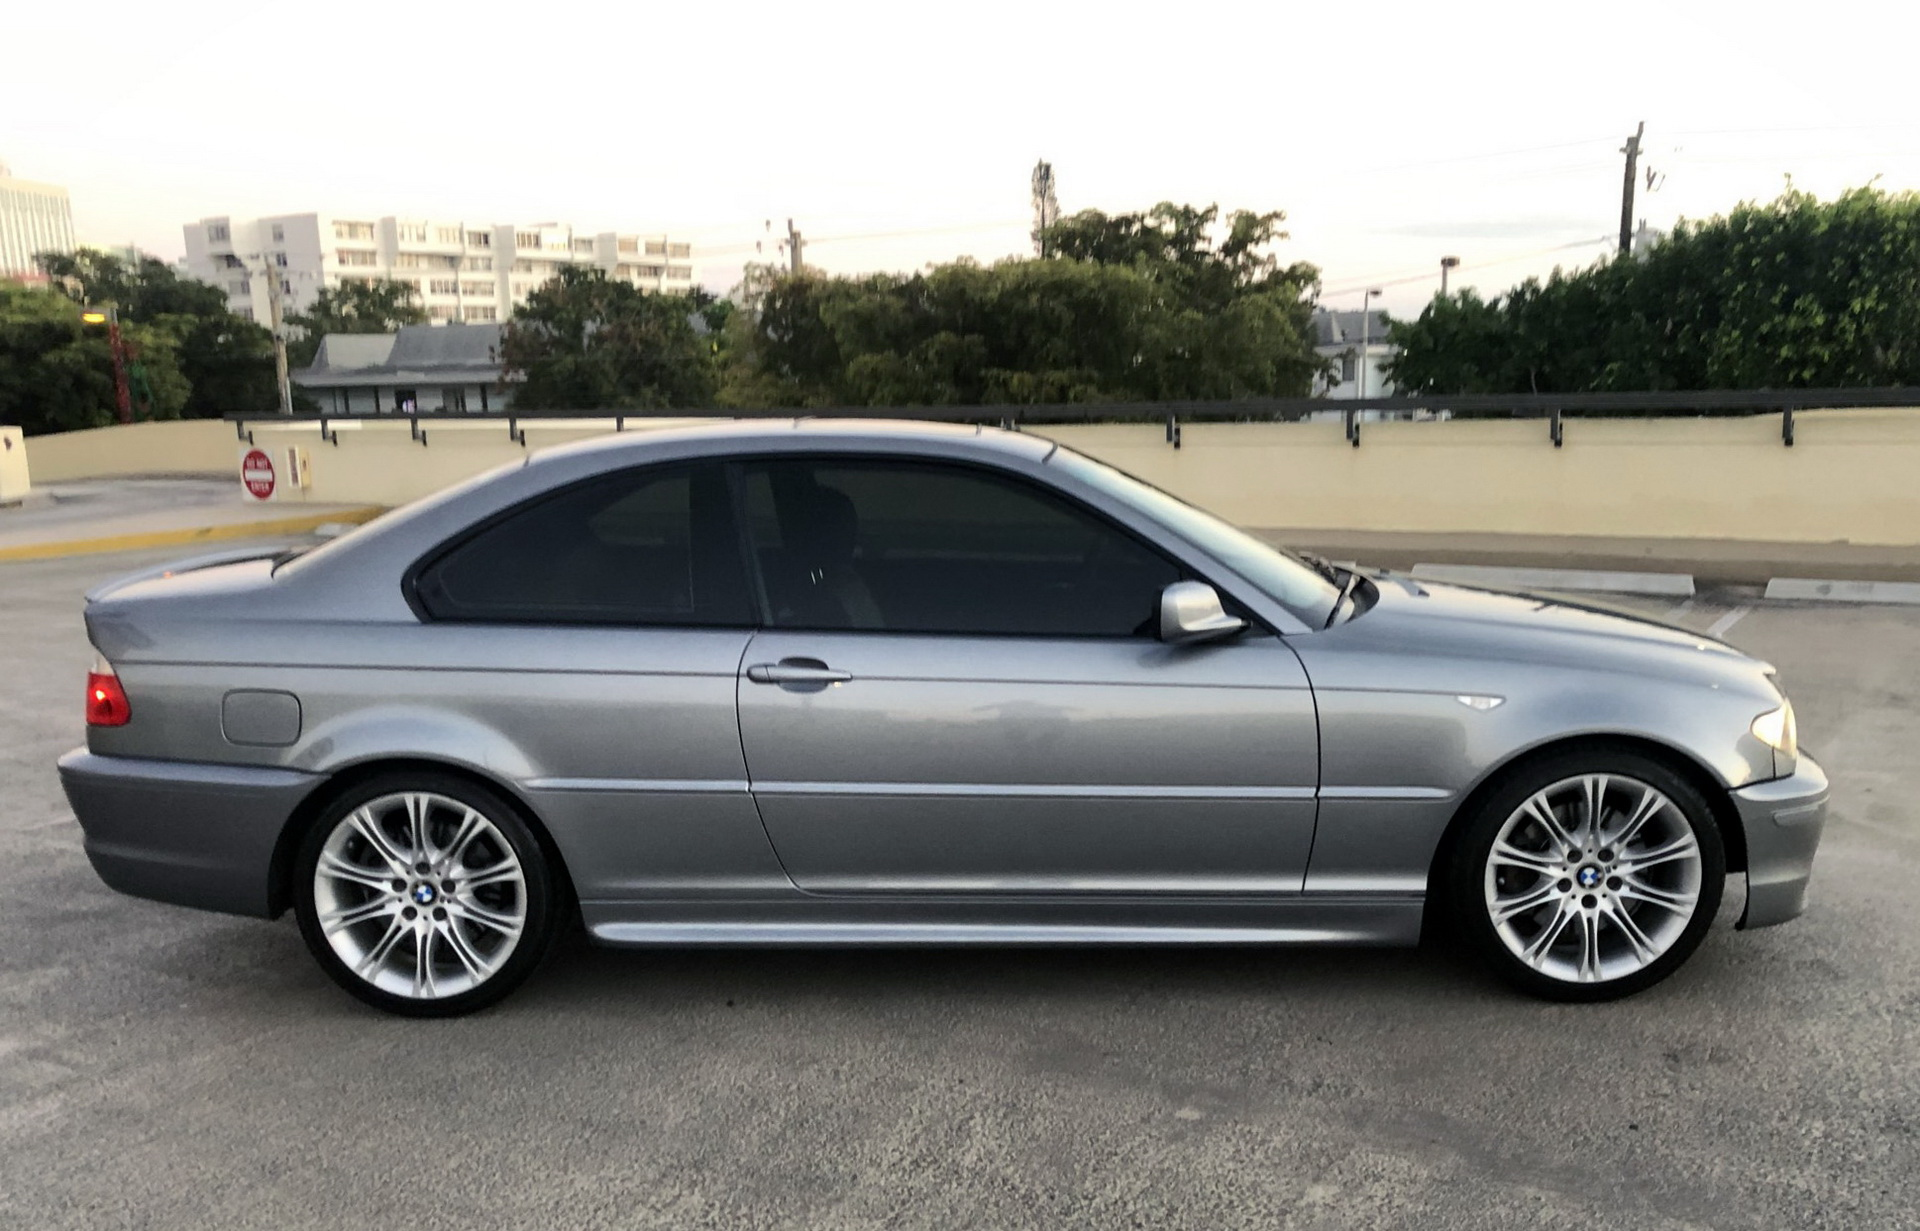 hight resolution of zhp equipped 3 series models have gained a cult like following through the years thanks to the car s excellent balance between everyday usability and an